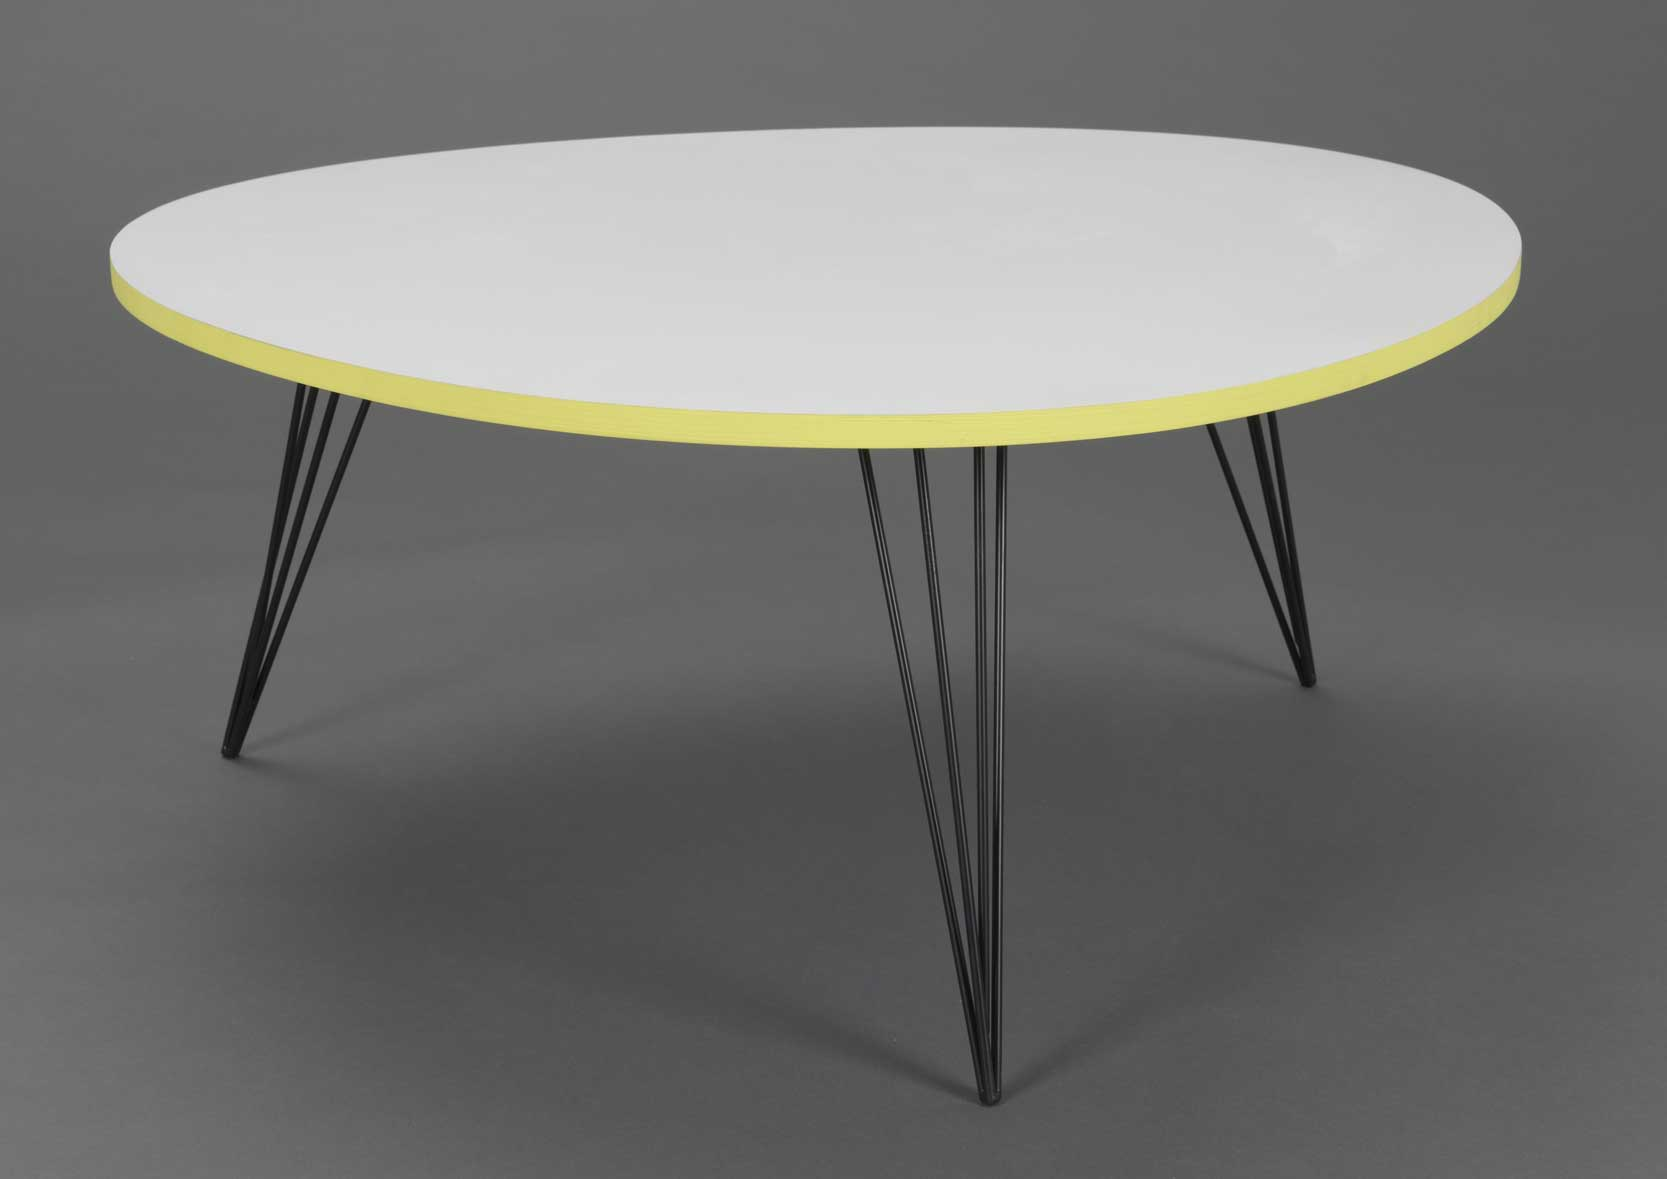 Table basse ronde blanche et jaune - Table basse blanche ronde ...